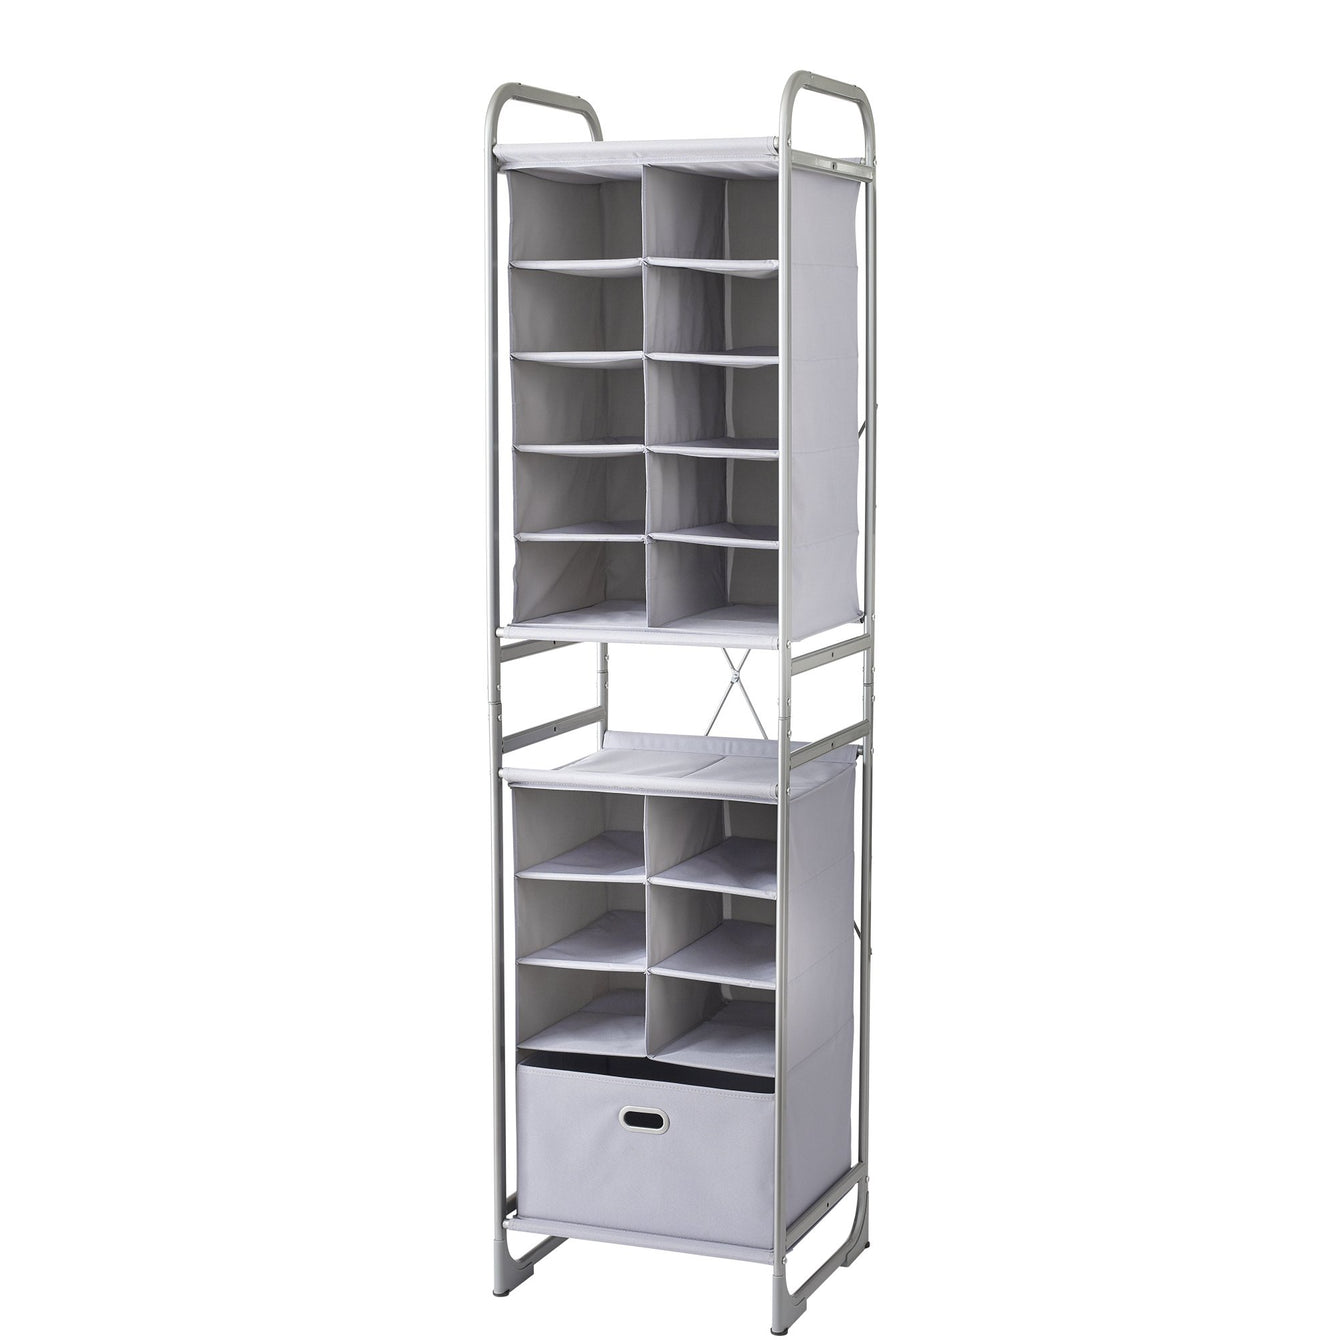 Versa System - Shoe Cubby Tower